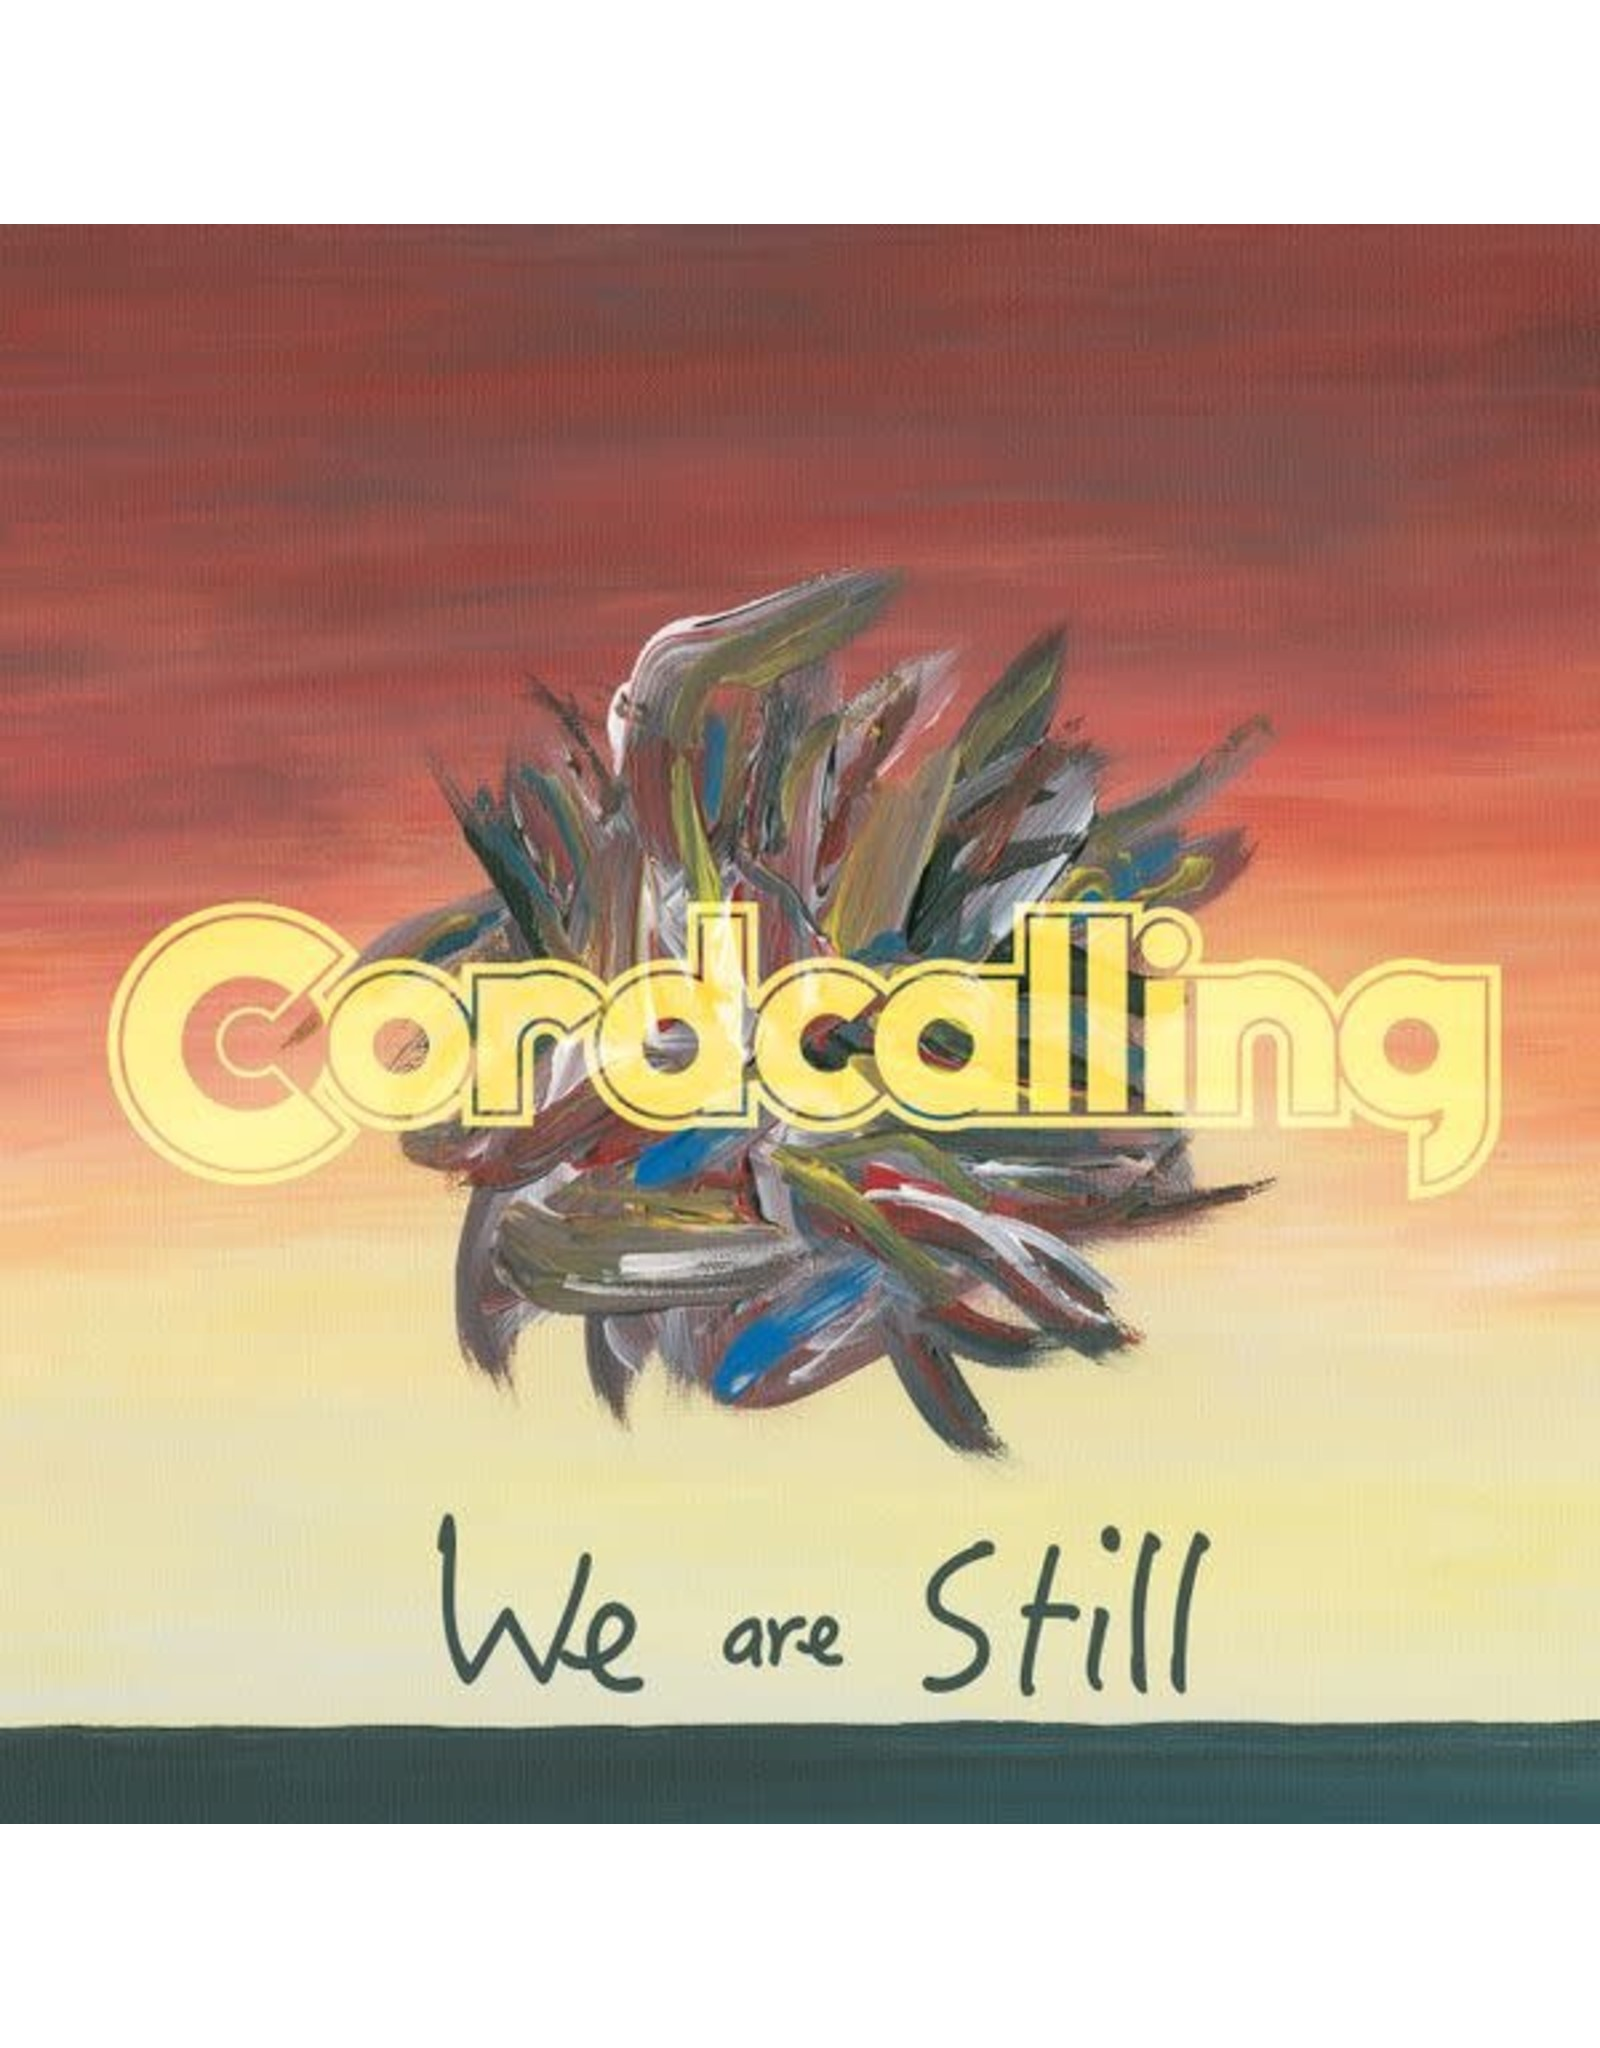 Cordcalling - We Are Still CD